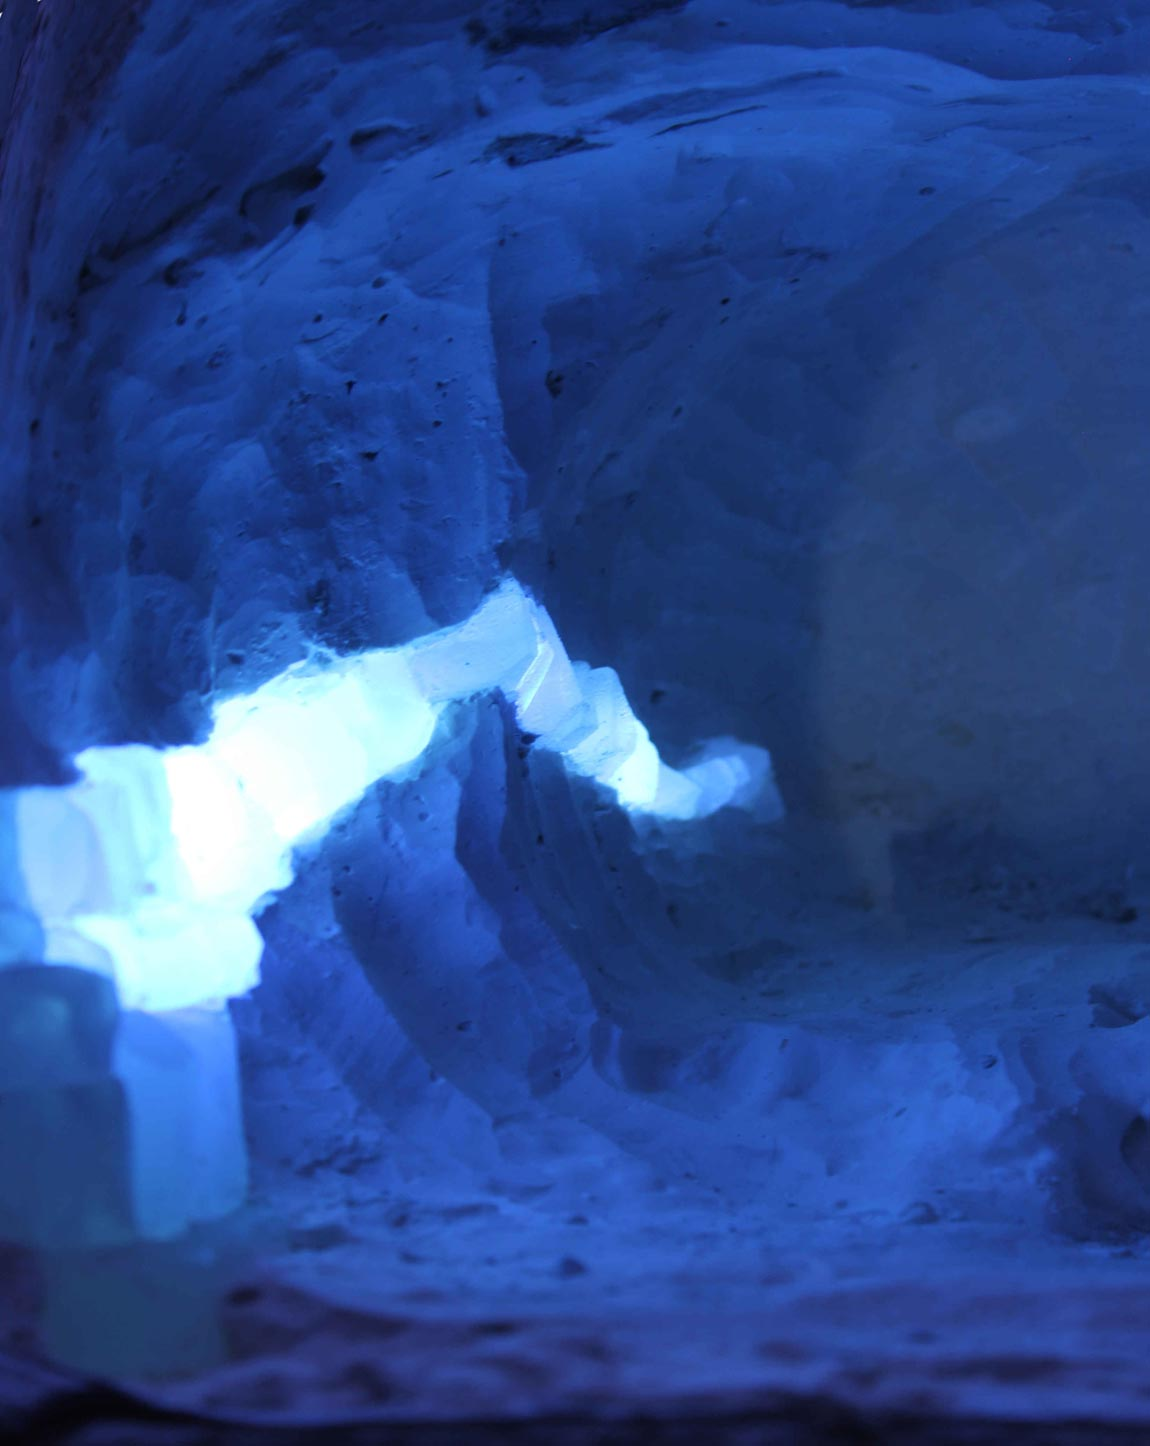 A seam of ice shining through the snow mine at one of the ice hotel rooms, at ICEHOTEL #28.